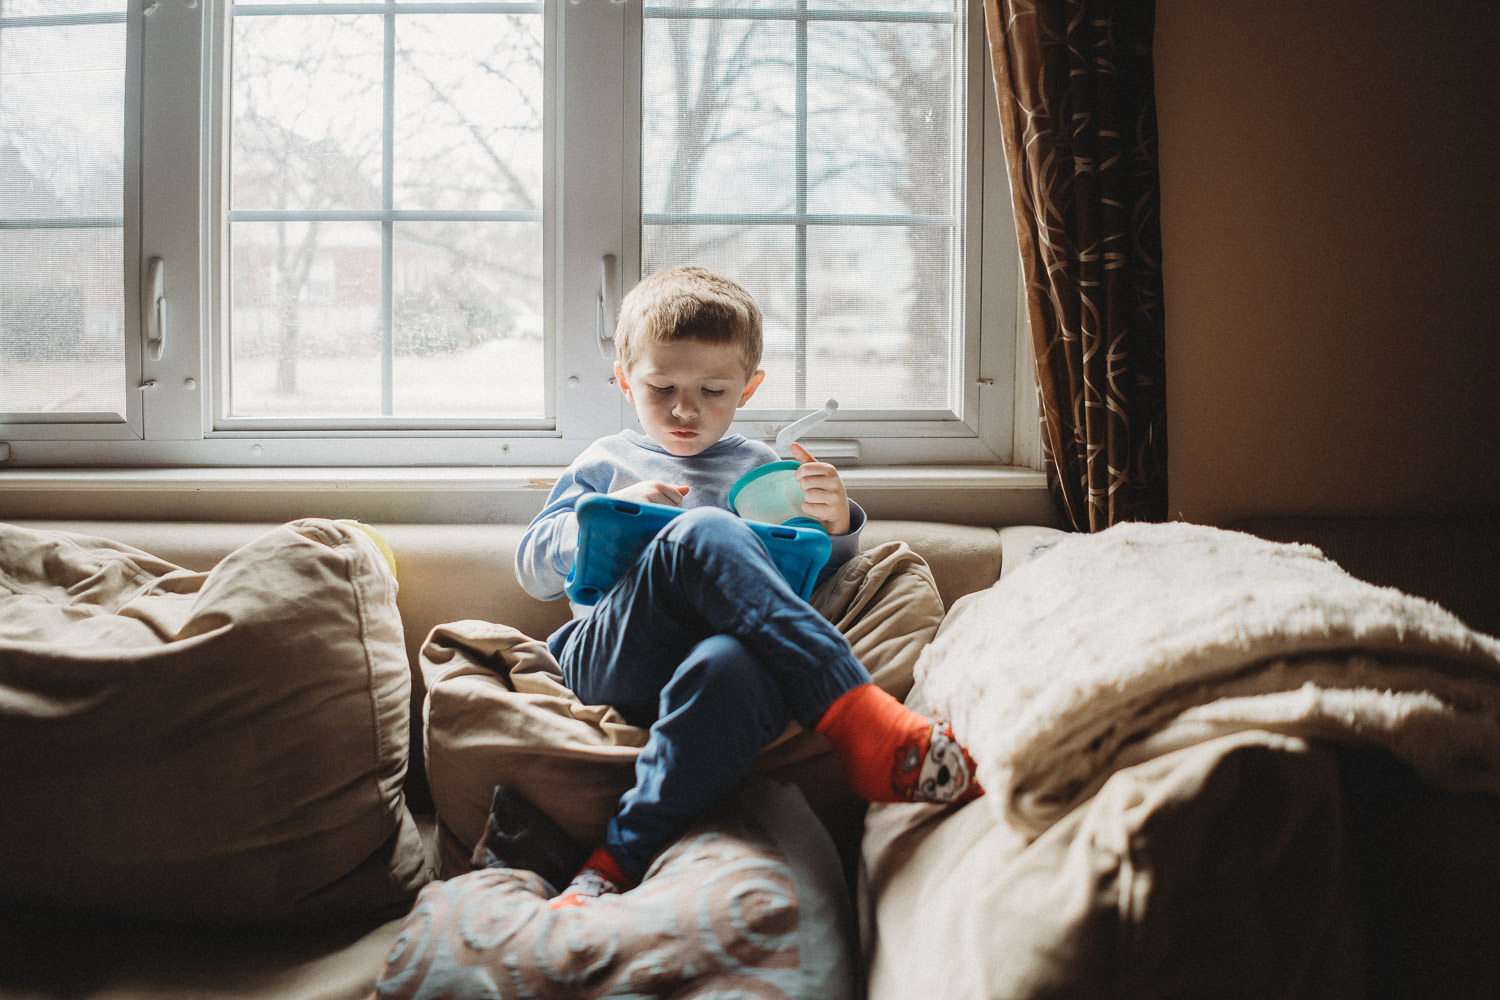 A little boy plays with his tablet on the couch.